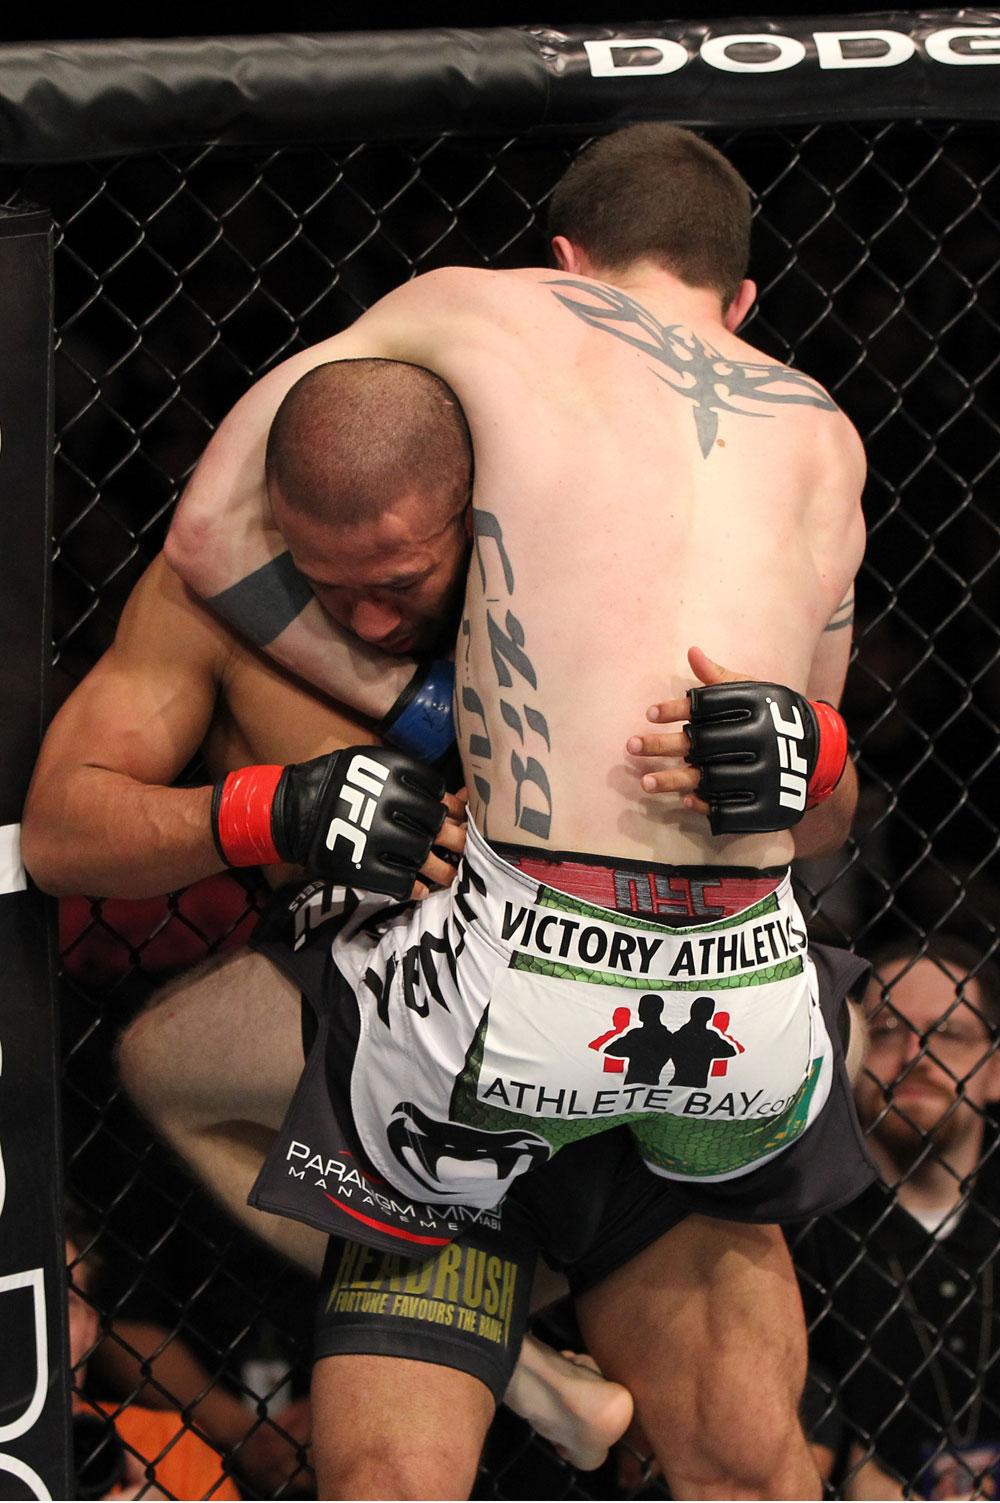 OMAHA, NE - FEBRUARY 15:  (R-L) John Albert attempts a guillotine choke submission against Ivan Menjivar during the UFC on FUEL TV event at Omaha Civic Auditorium on February 15, 2012 in Omaha, Nebraska.  (Photo by Josh Hedges/Zuffa LLC/Zuffa LLC via Getty Images) *** Local Caption *** Ivan Menjivar; John Albert